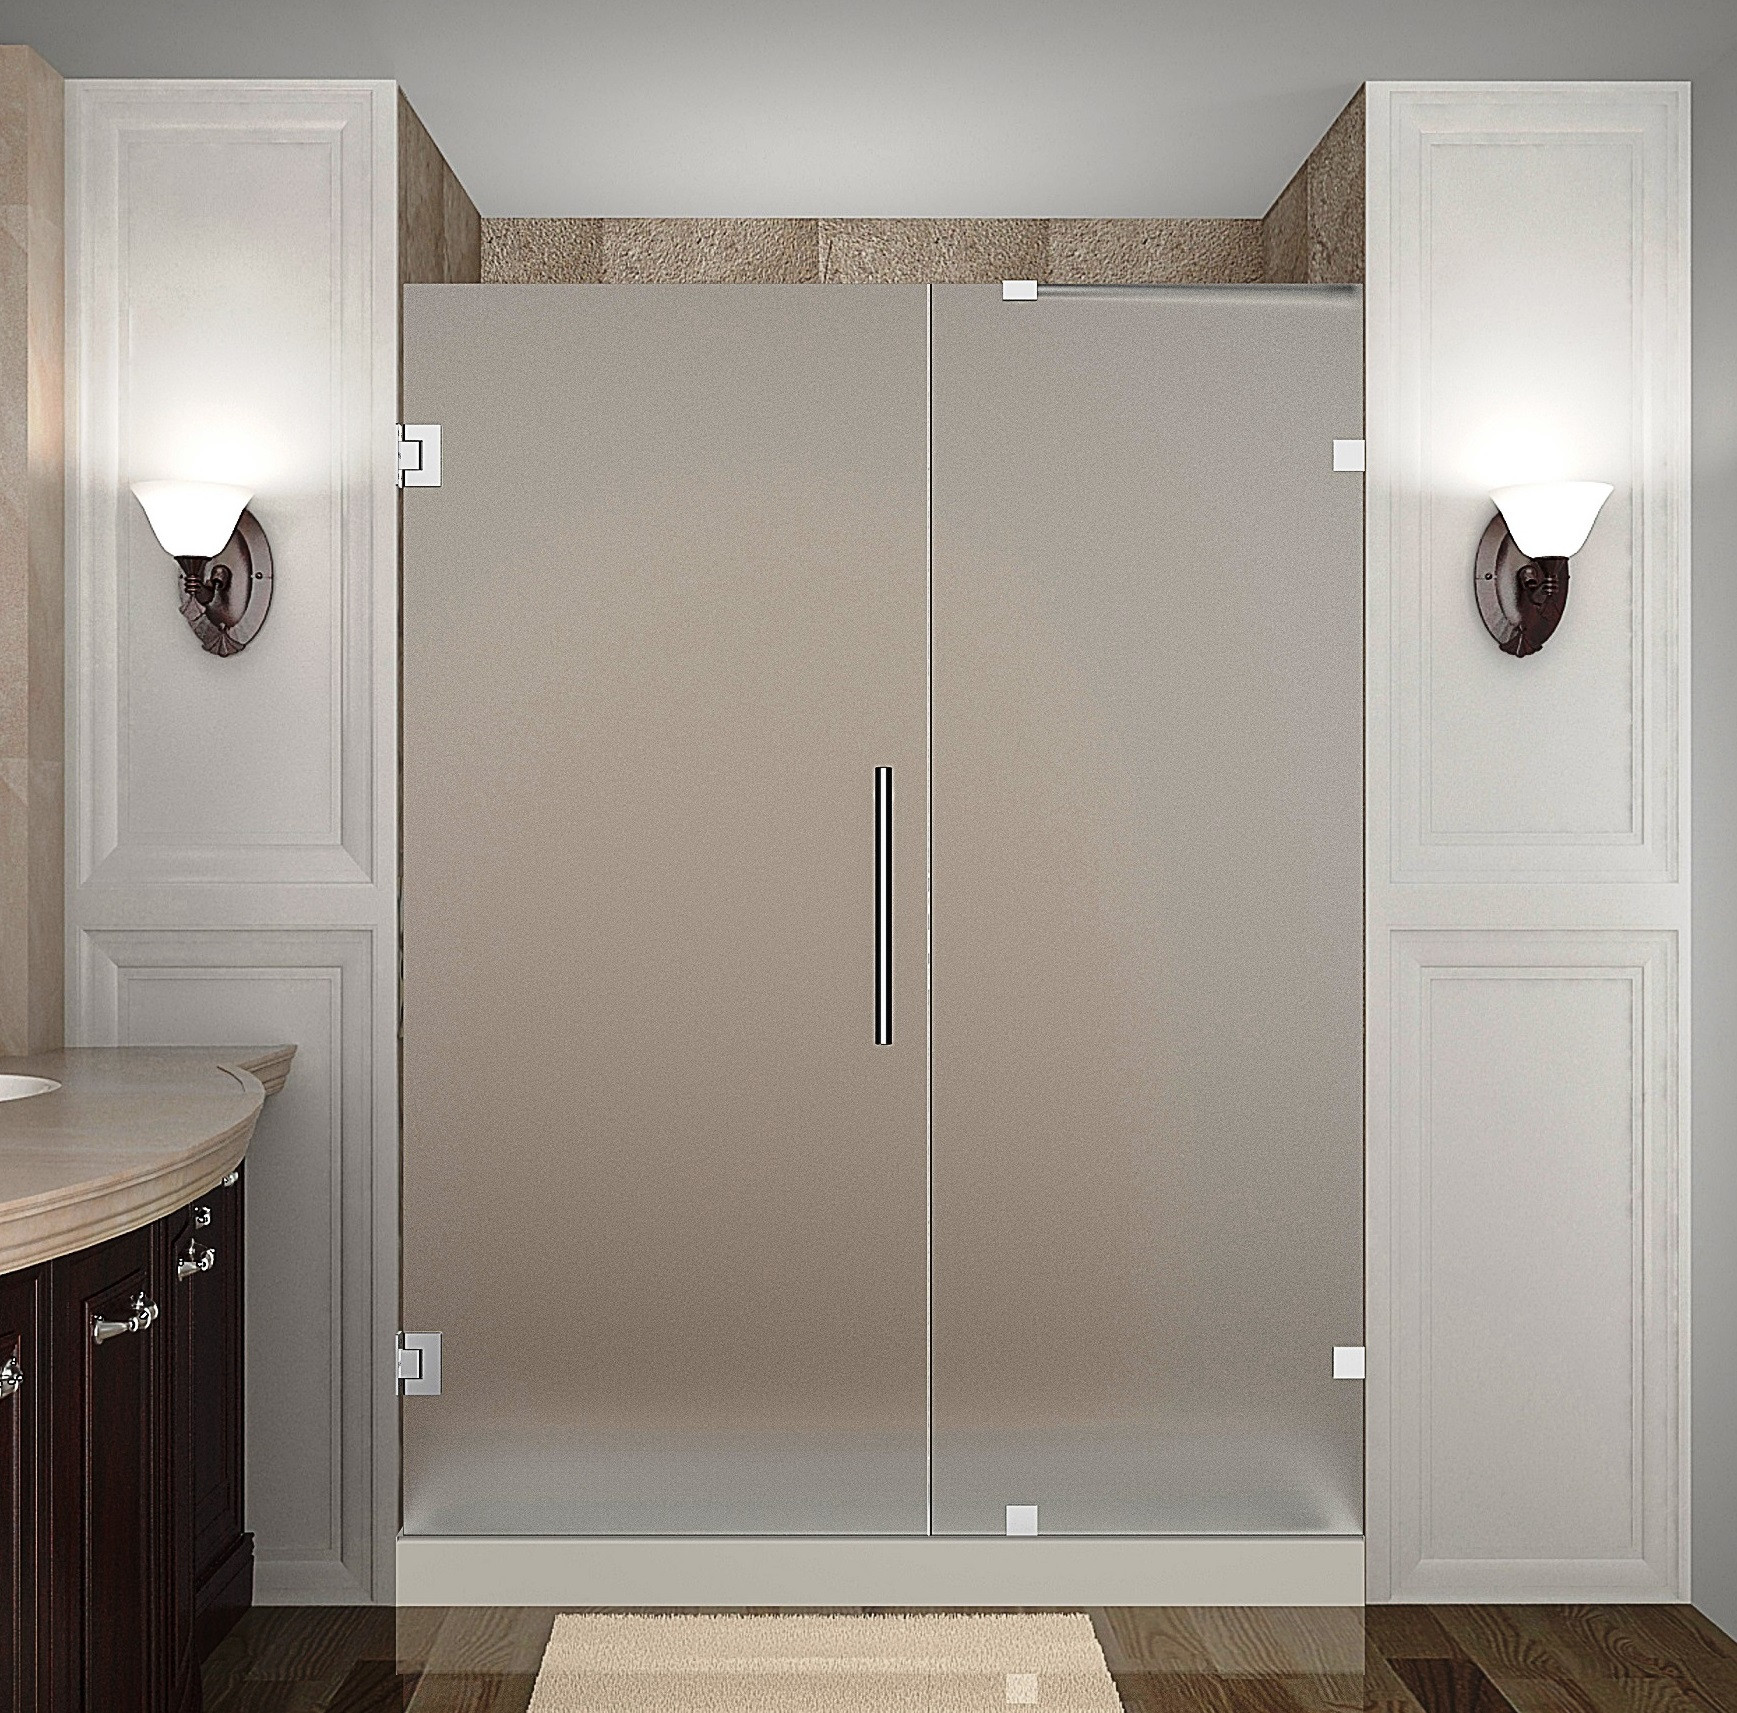 Aston Global SDR985F-CH-68-10 Completely Frameless Hinged Frosted Glass Shower Door In Chrome